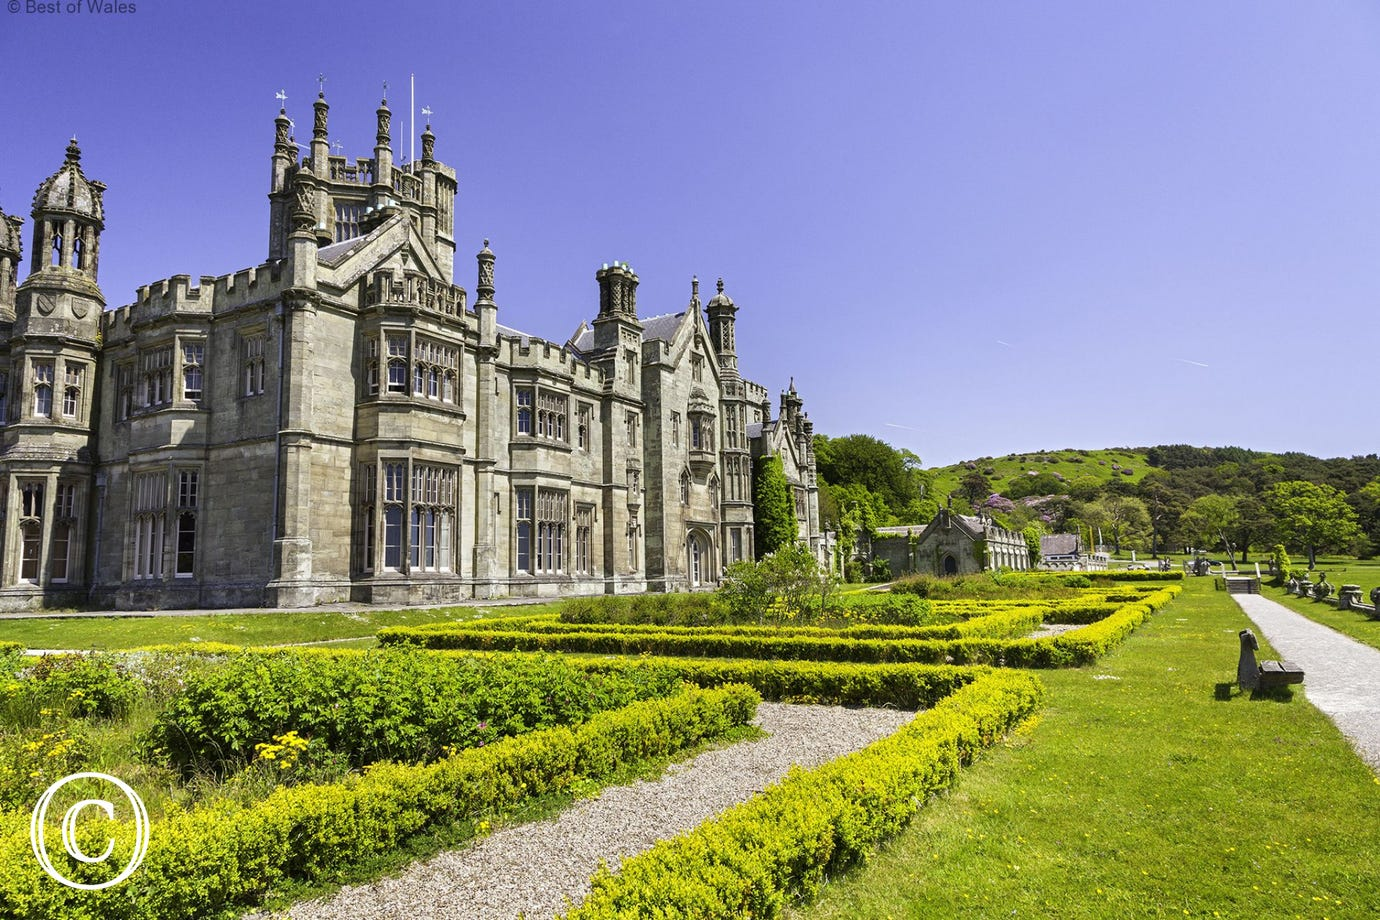 Margam Park is well worth a visit